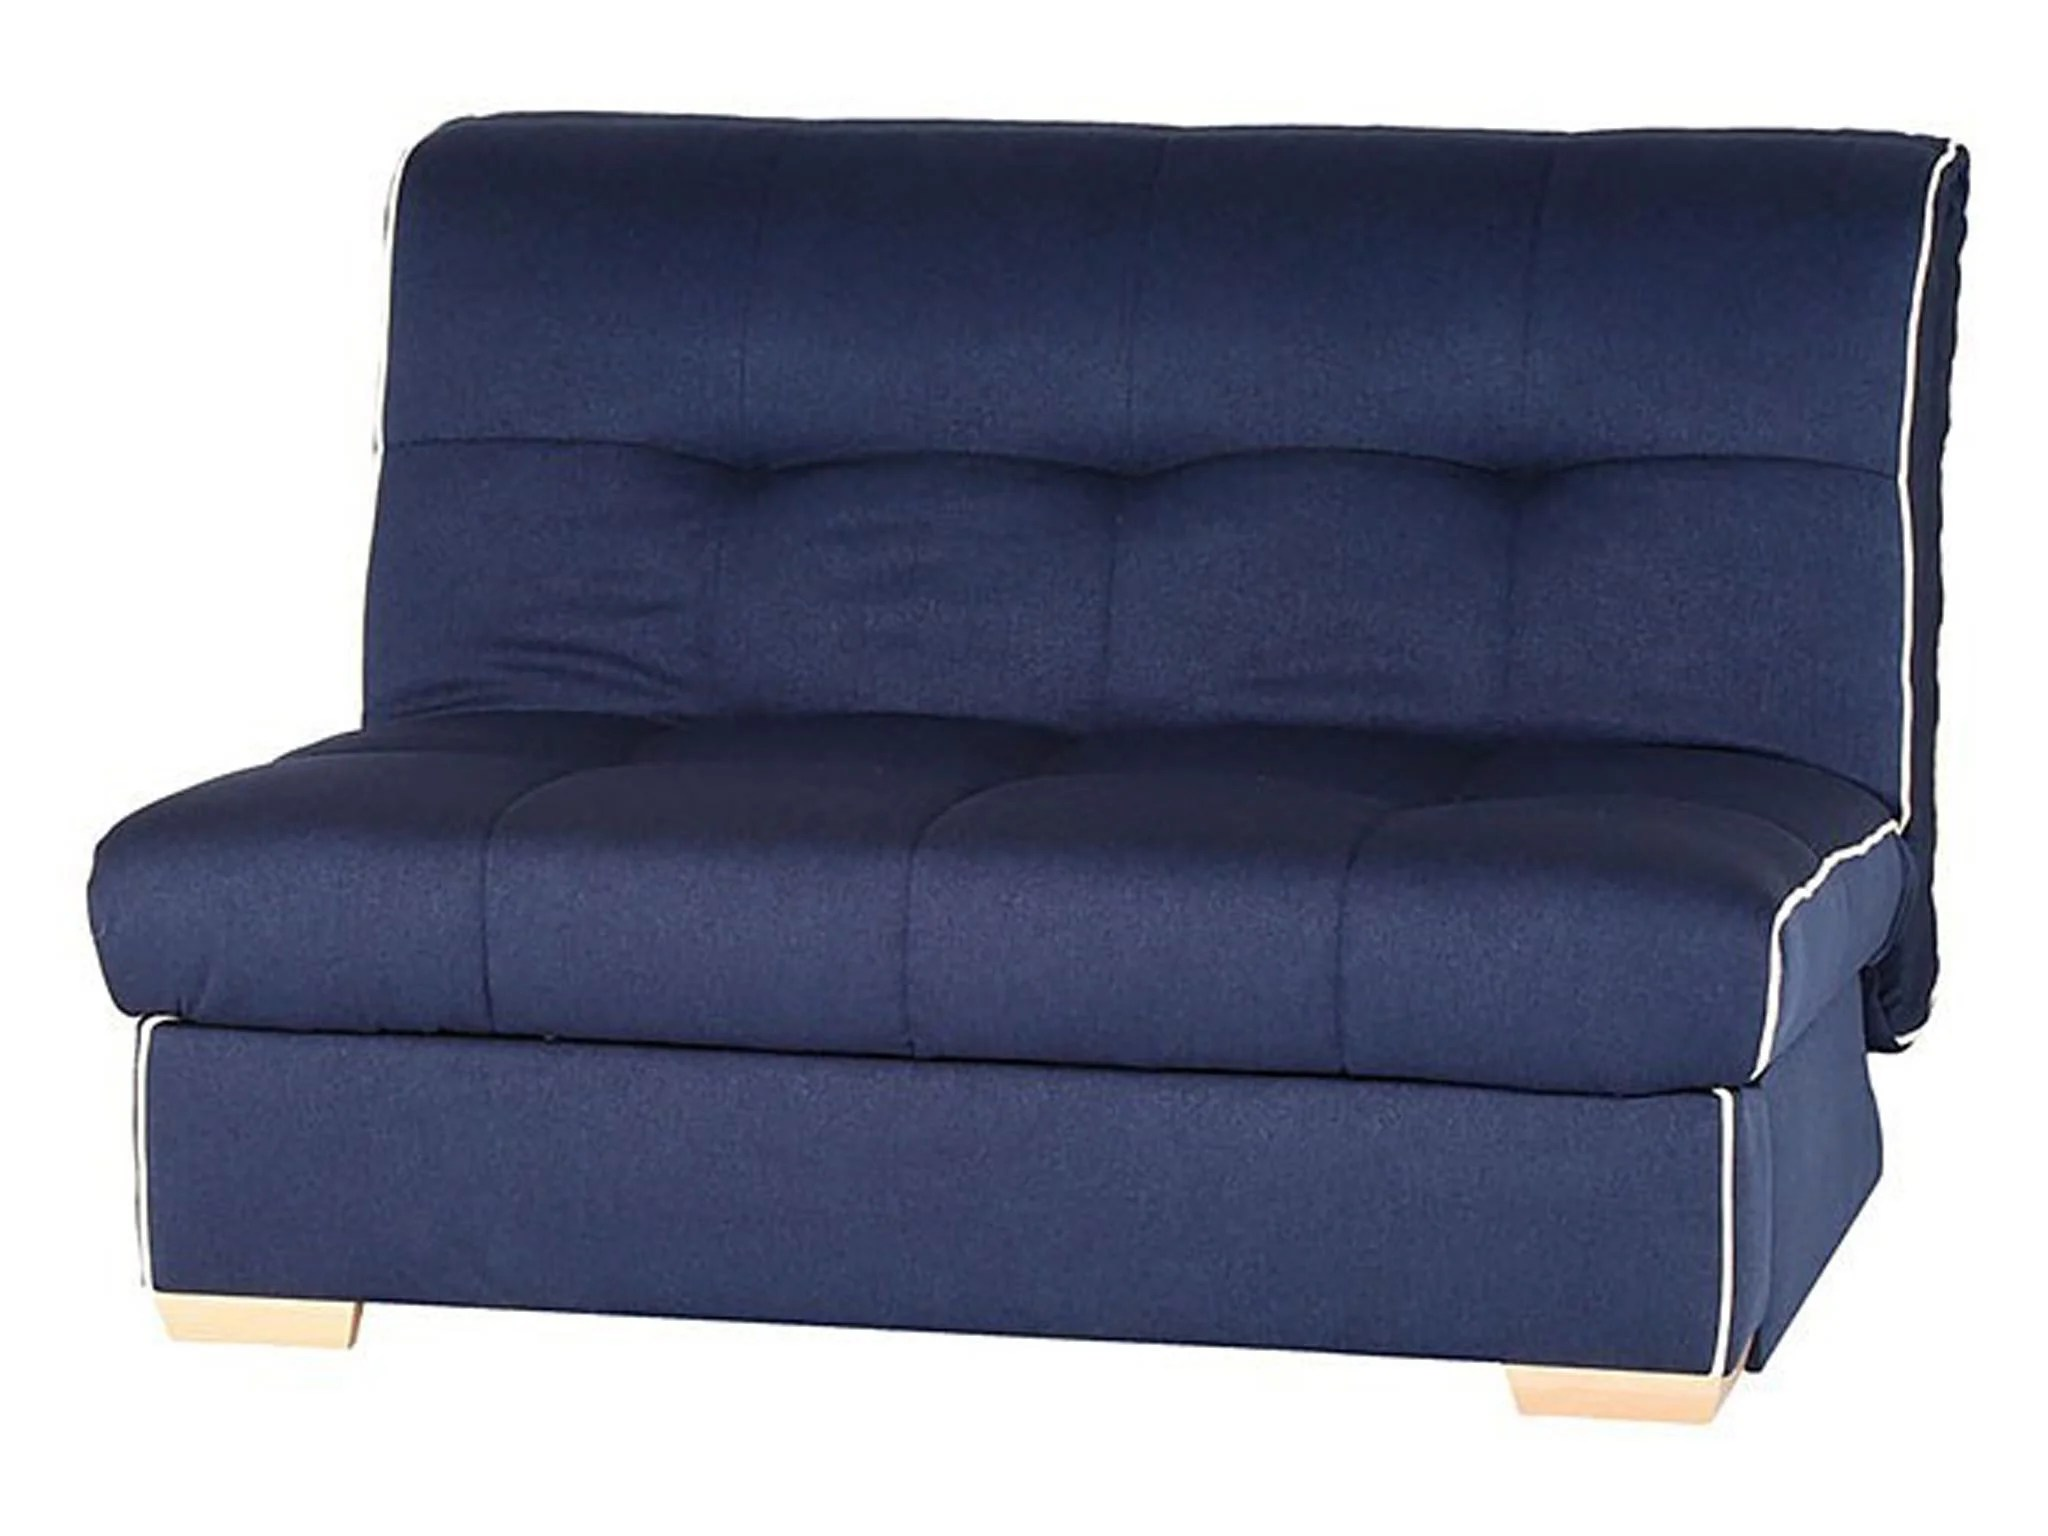 Made Sofa Shop 12 Best Sofa Beds The Independent